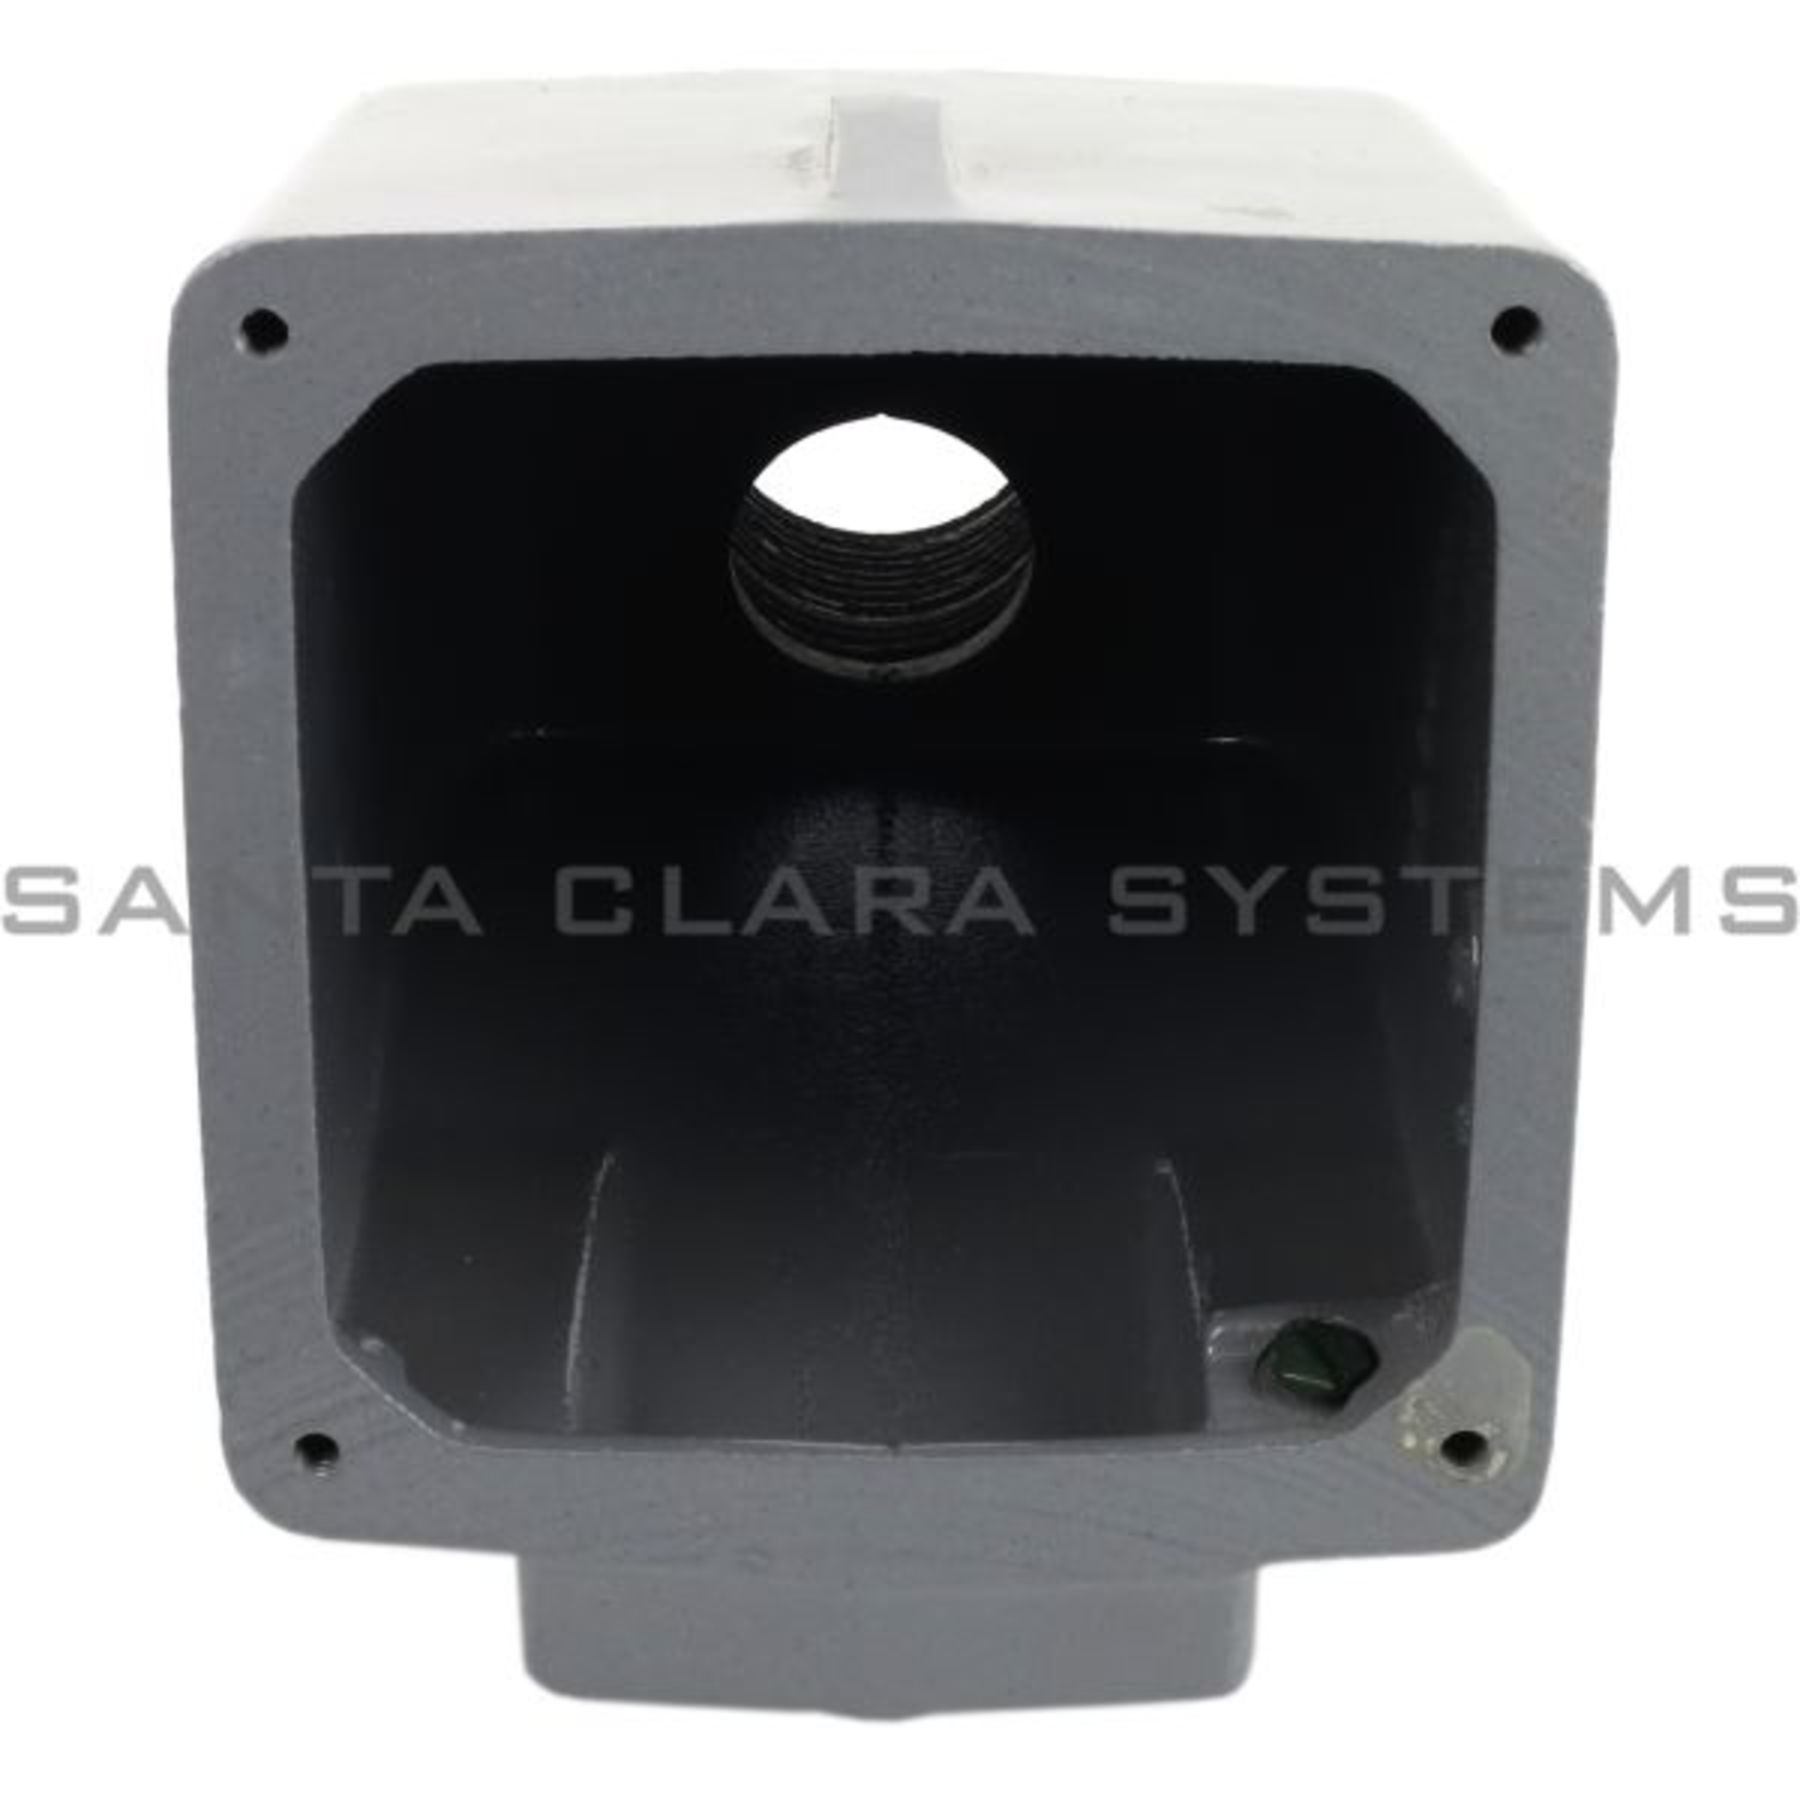 Bb601w Hubbell In Stock And Ready To Ship Santa Clara Systems Bryant Wiring Devices Pin Sleeve Back Box Product Image